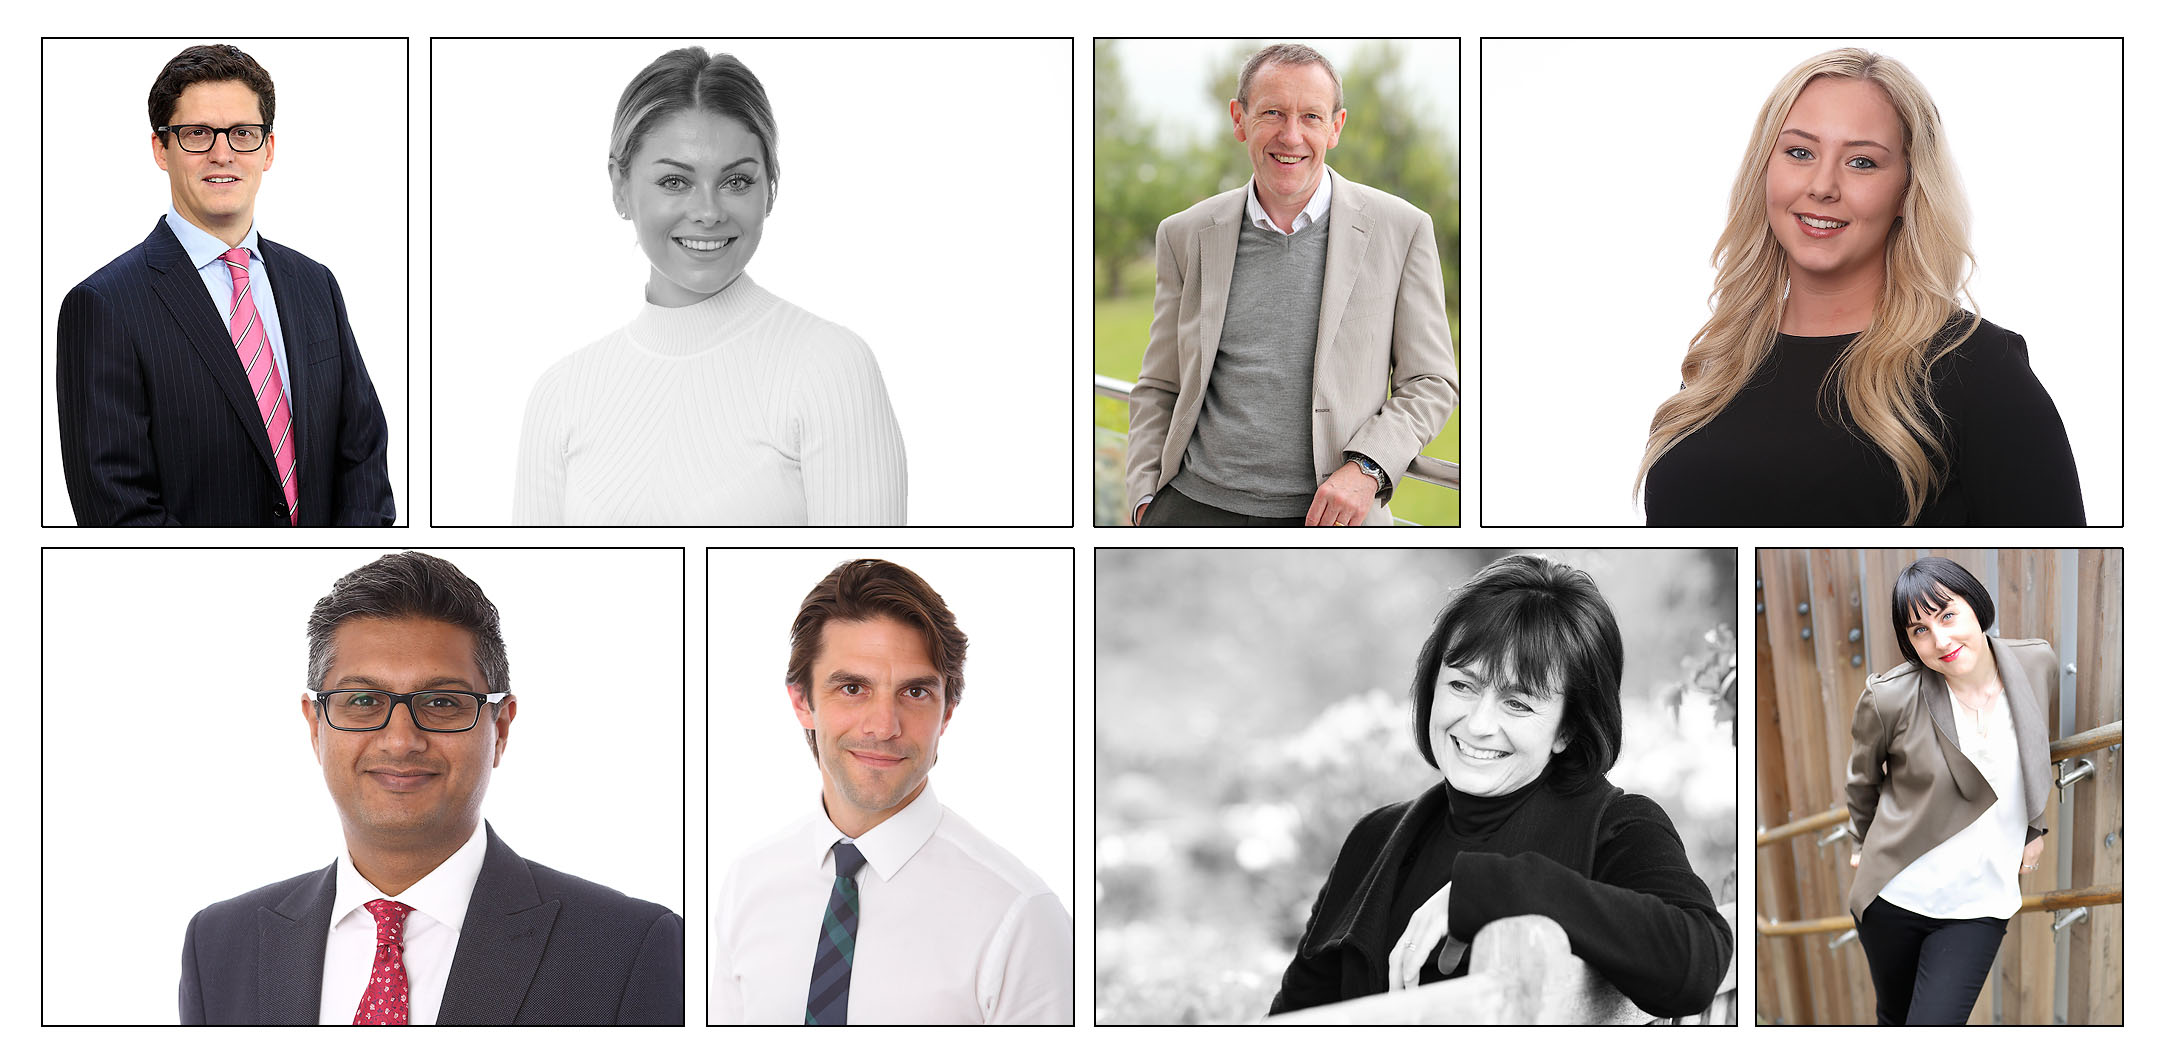 Business Headshots In Harrogate, Leeds & York Areas